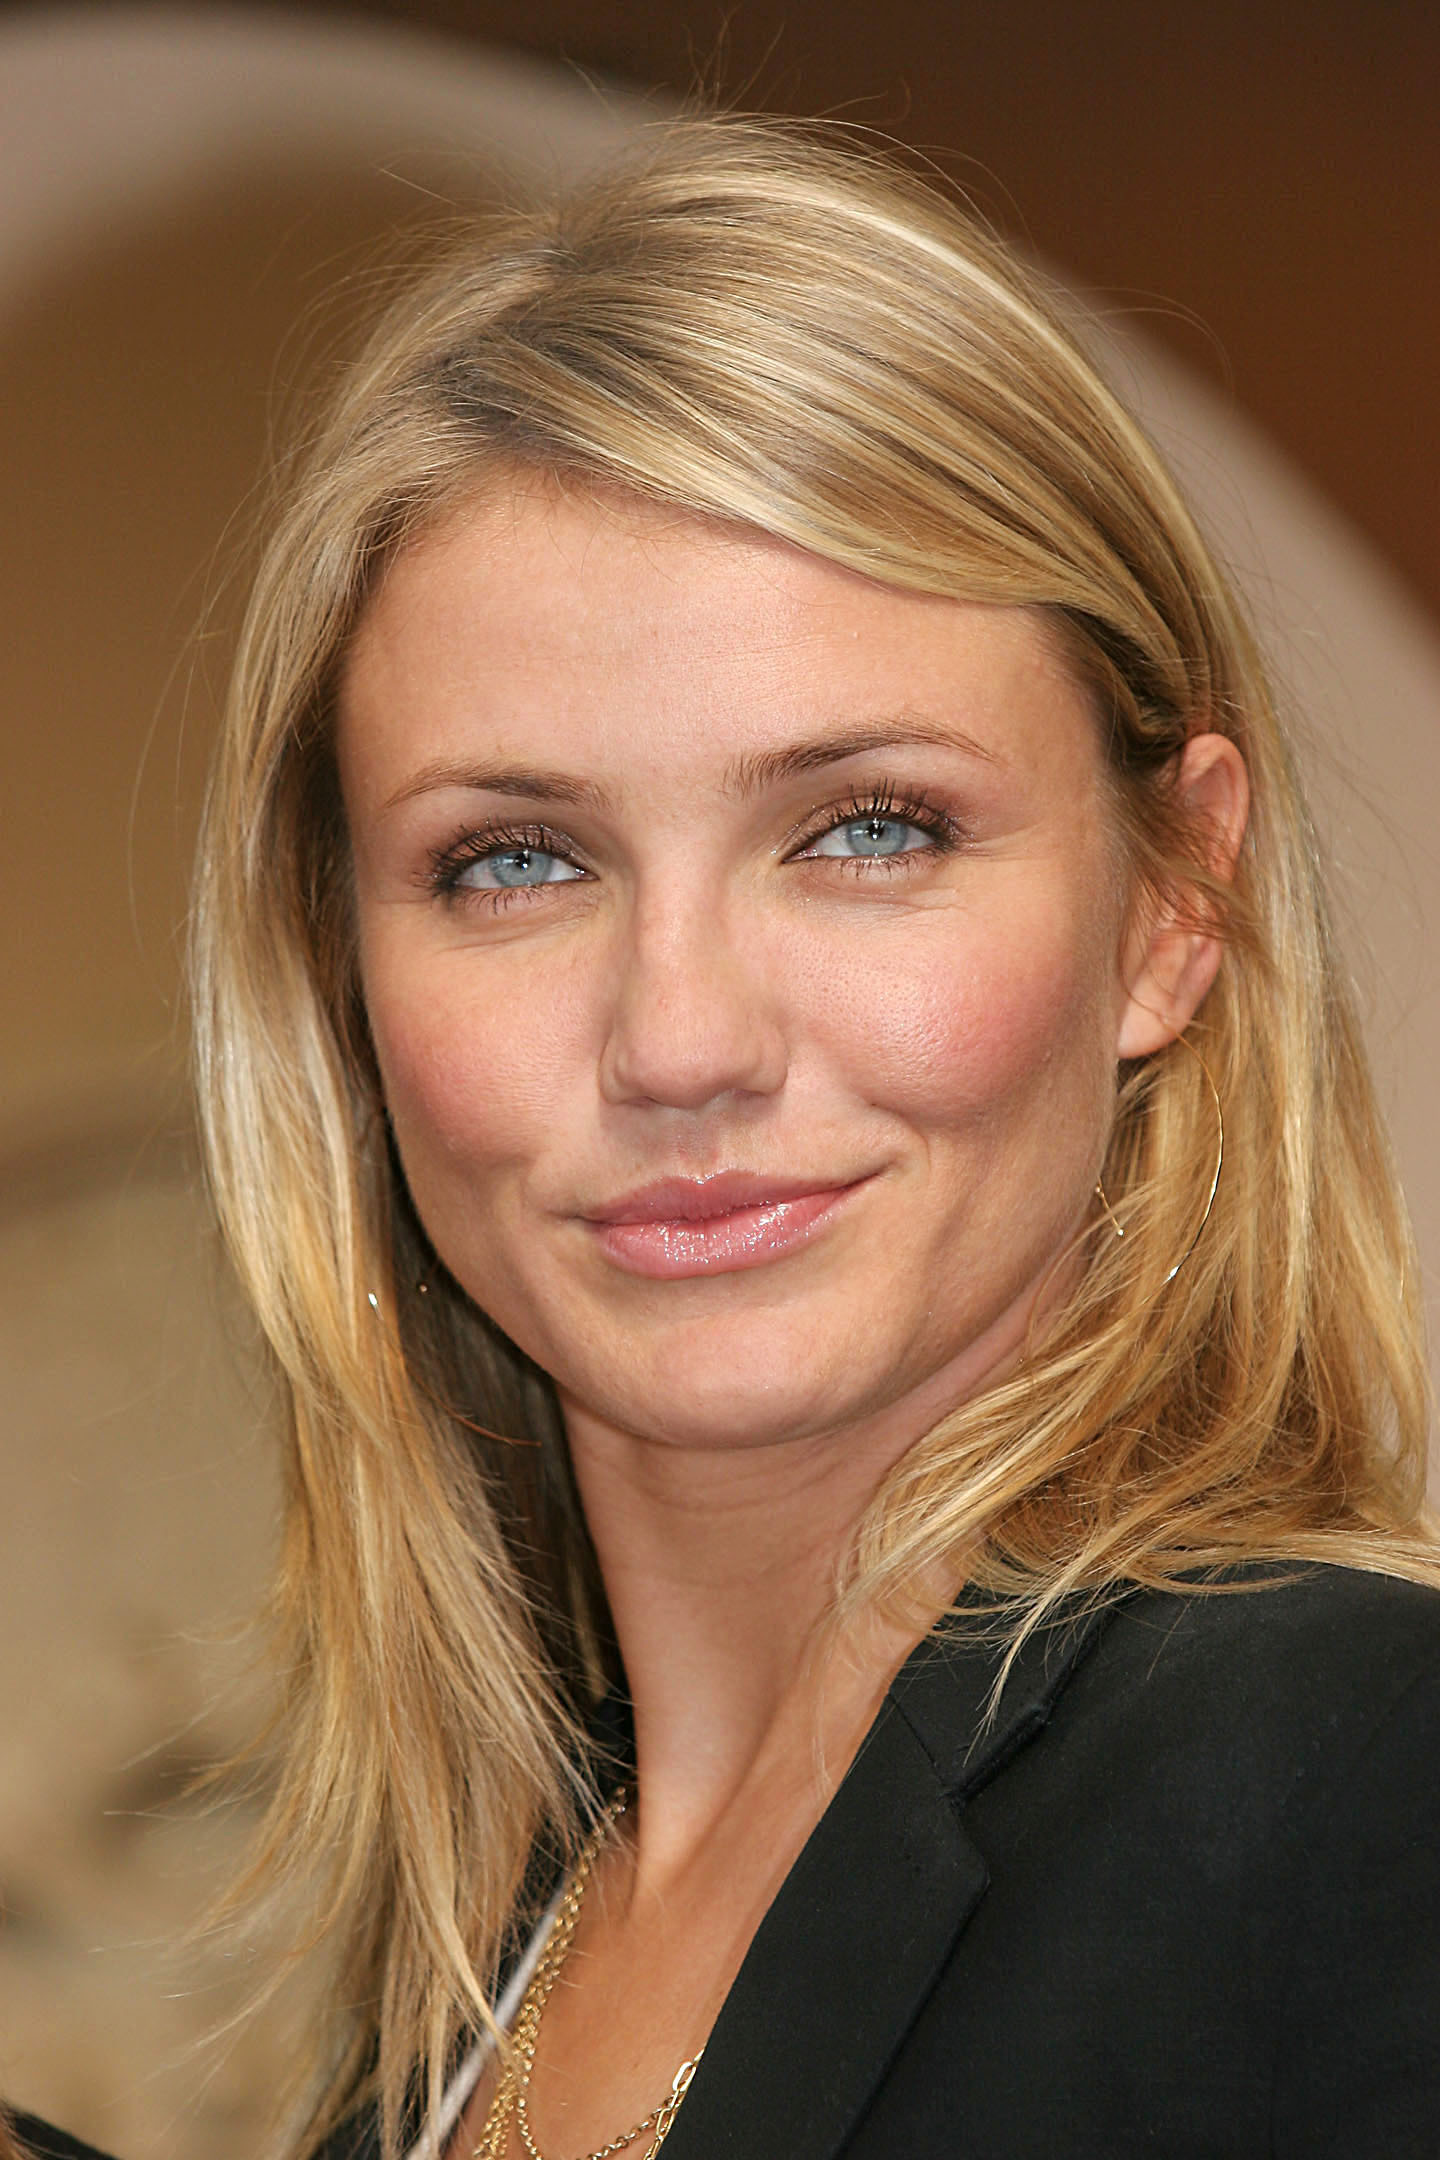 Cameron Diaz nudes (34 photos), pics Erotica, YouTube, braless 2019